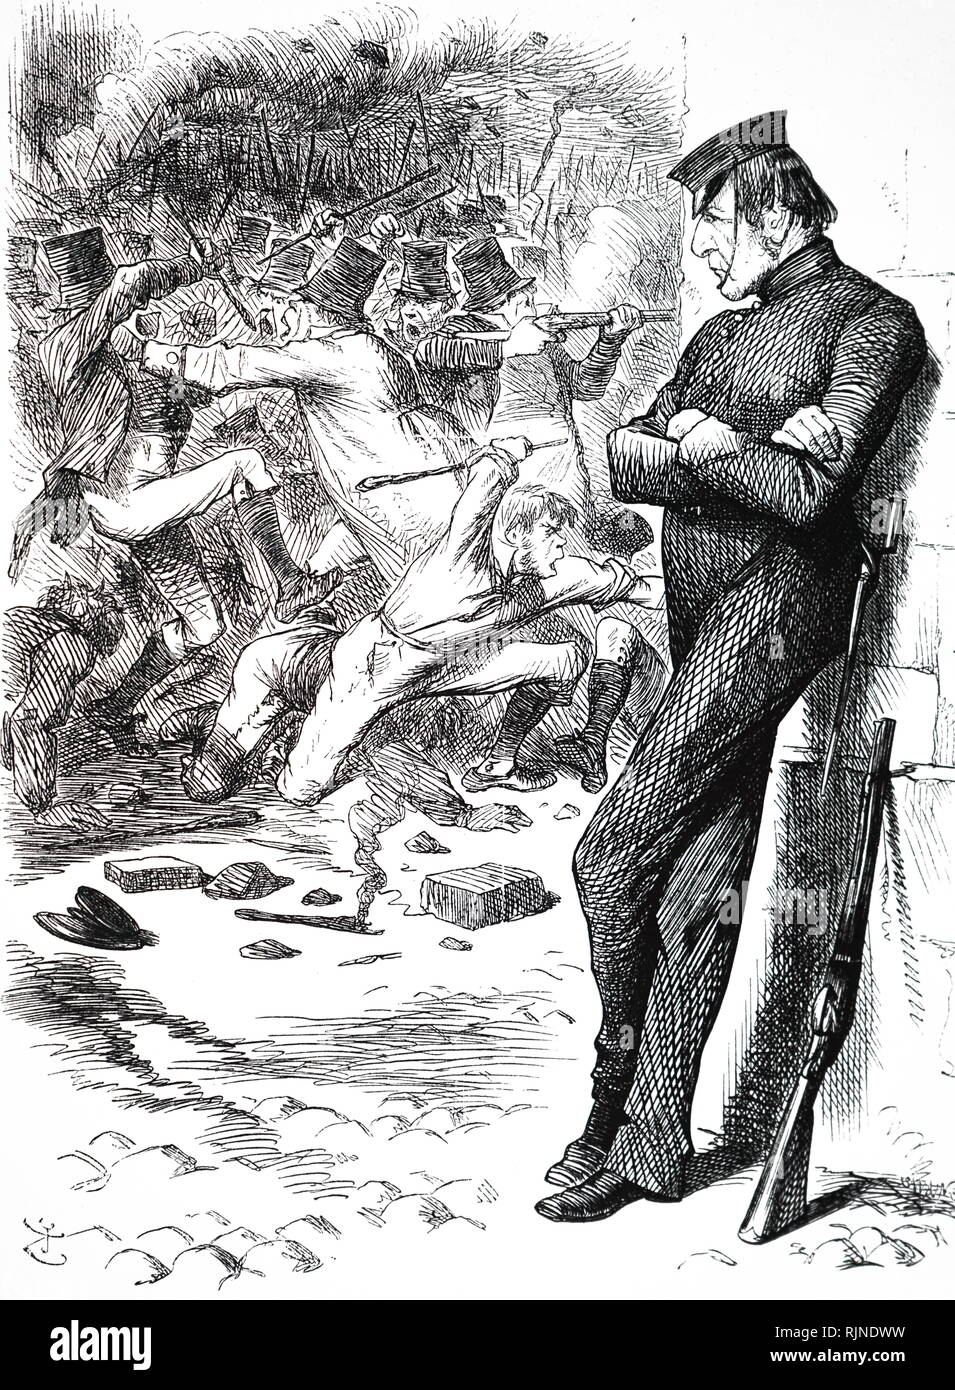 A cartoon depicting Prime Minister William Gladstone watching the unrest in Ireland, waiting to intervene. April 4th a new Irish Peace Preservation Act was passed. Illustrated by John Tenniel. - Stock Image